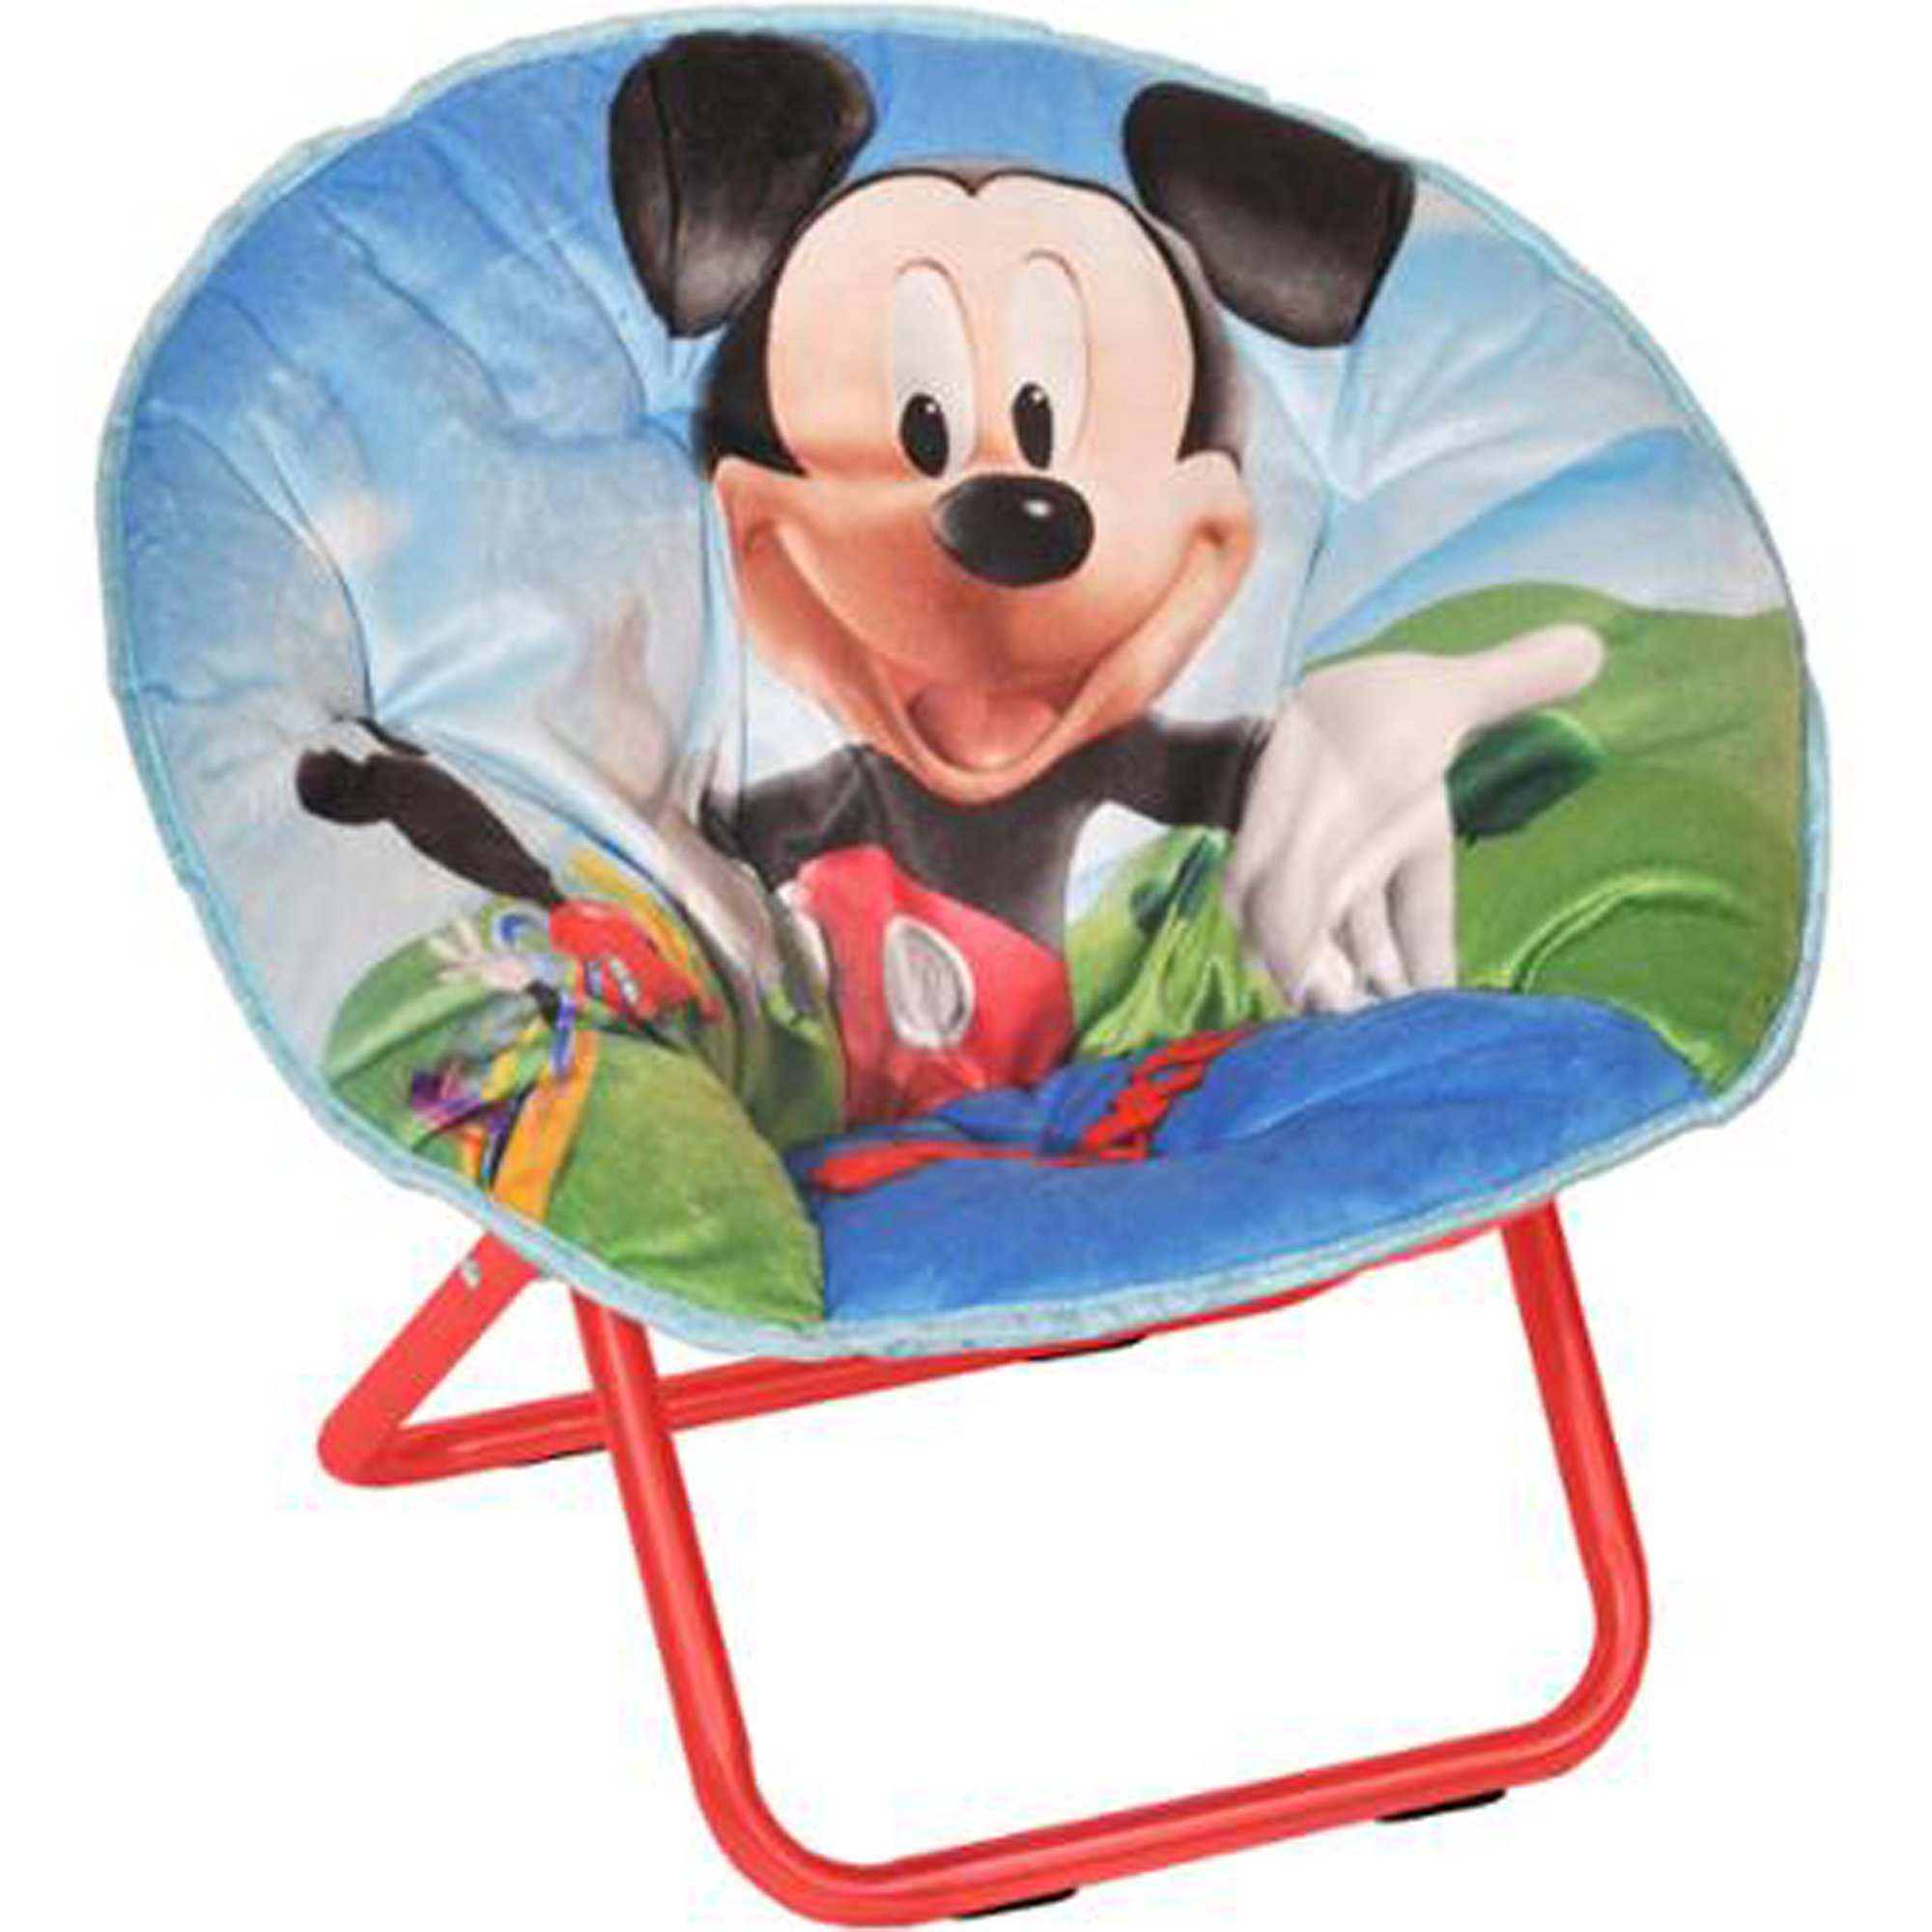 Mickey Mouse Mini Saucer Chair Multicolor Toddler Kids Seat Portable Character Comfortable Seating Saucer Shape Sturdy Metal Frame Polyester Cushioned Seat Playroom Easy Storage Bedroom by Disney